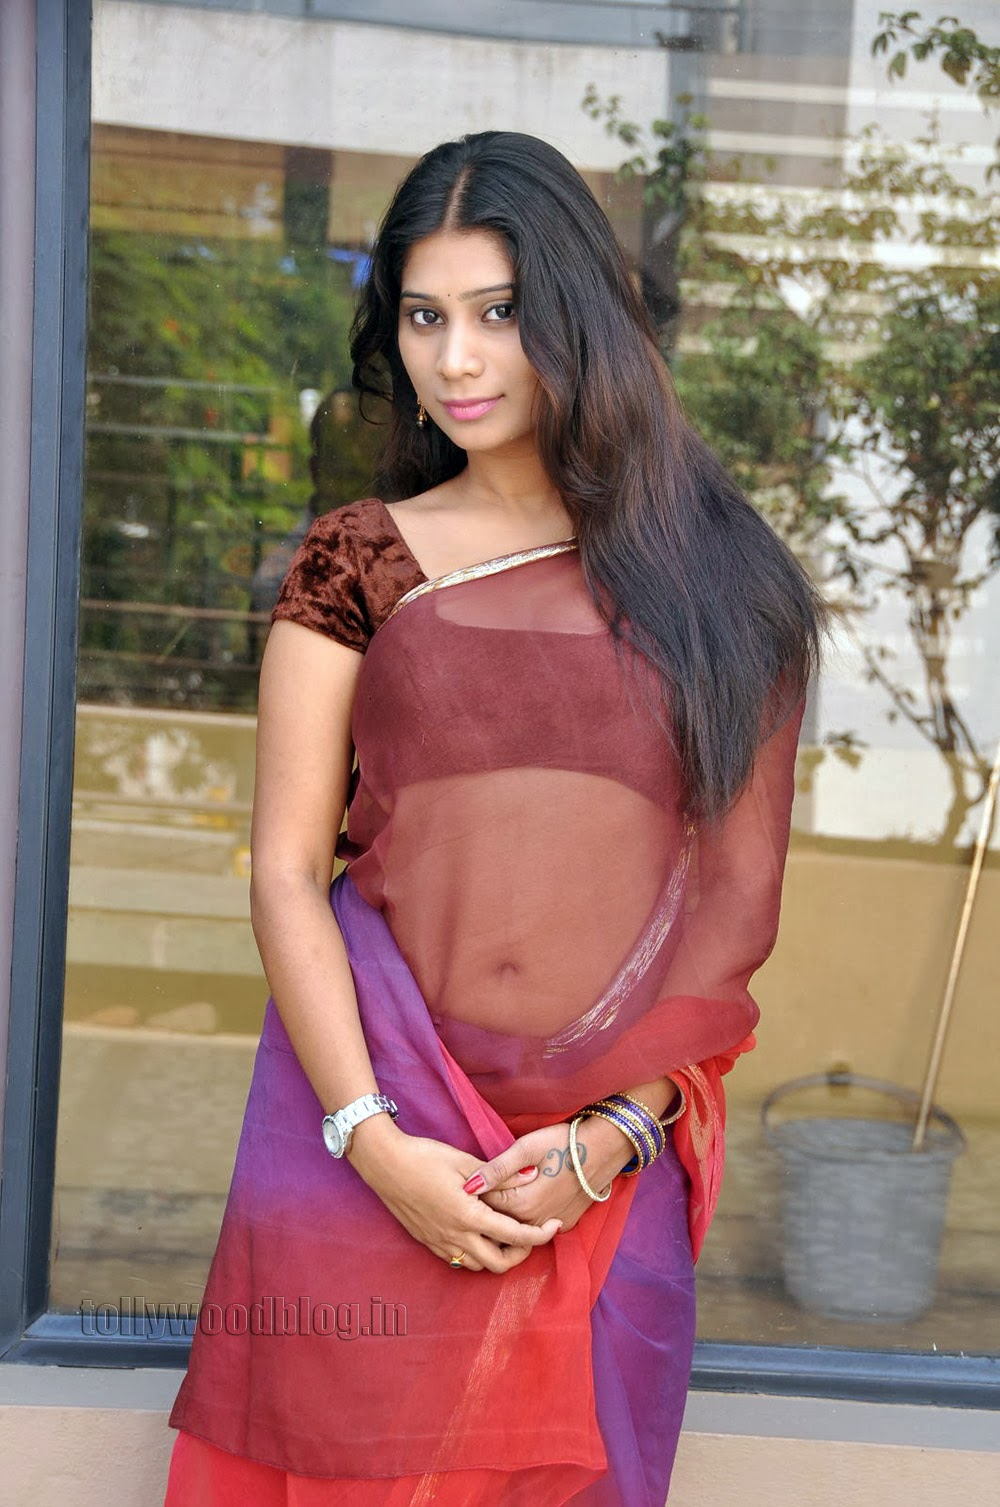 Midhuna waliya hot photos in saree